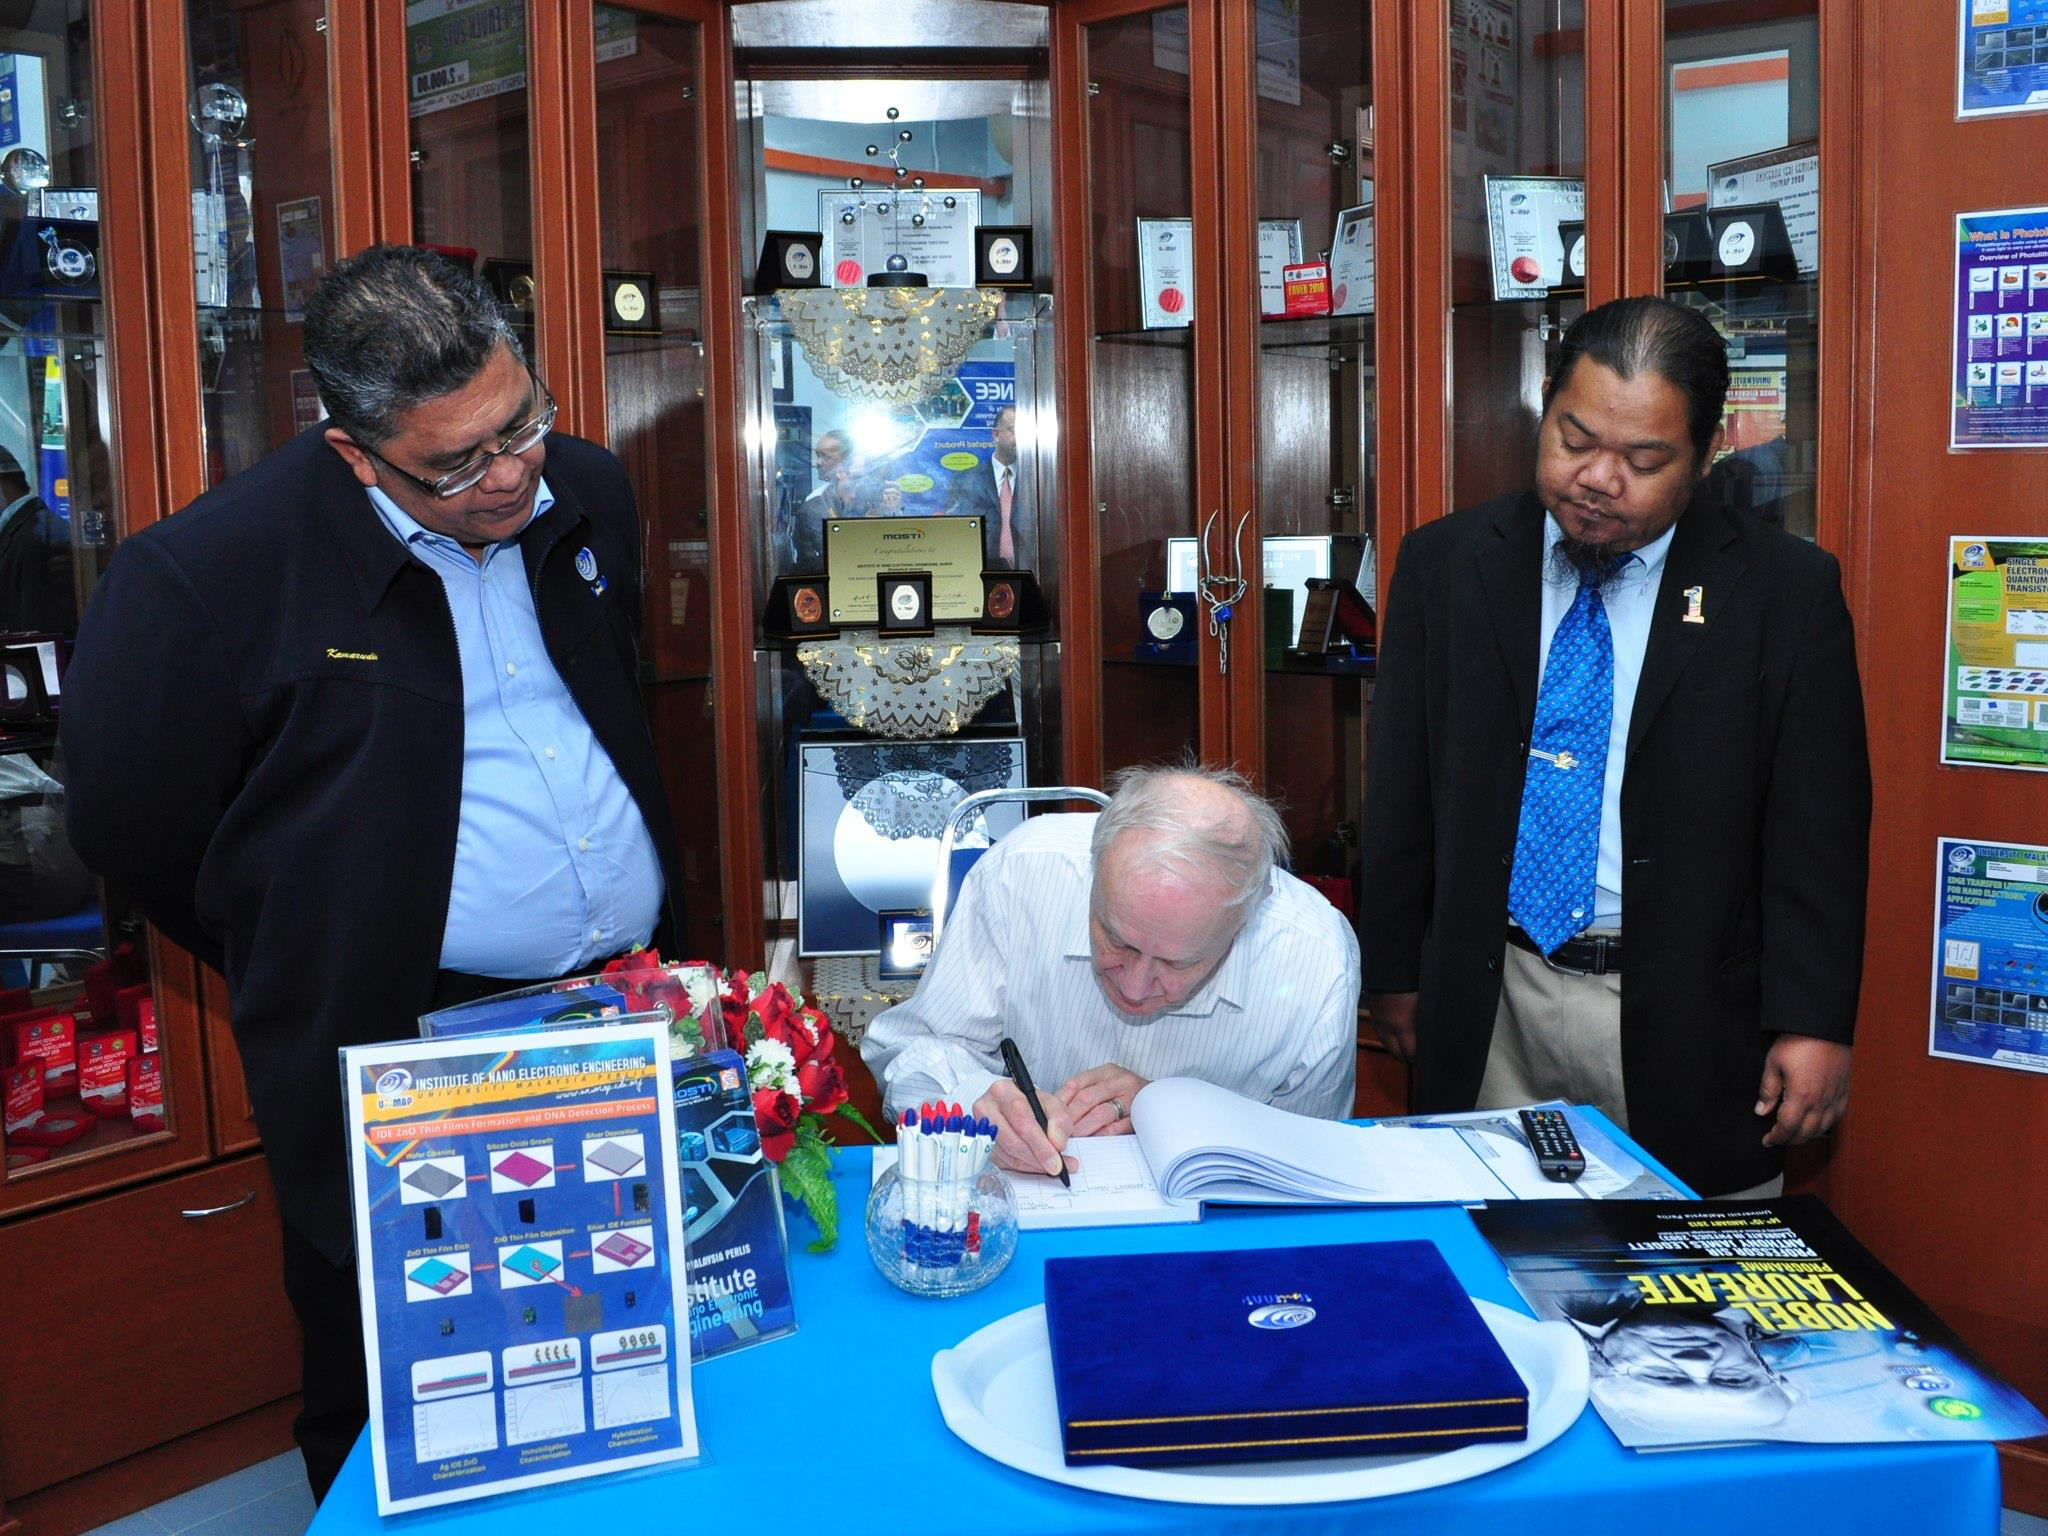 Prof. Sir Anthony J. Leggett signing the INEE guestbook.